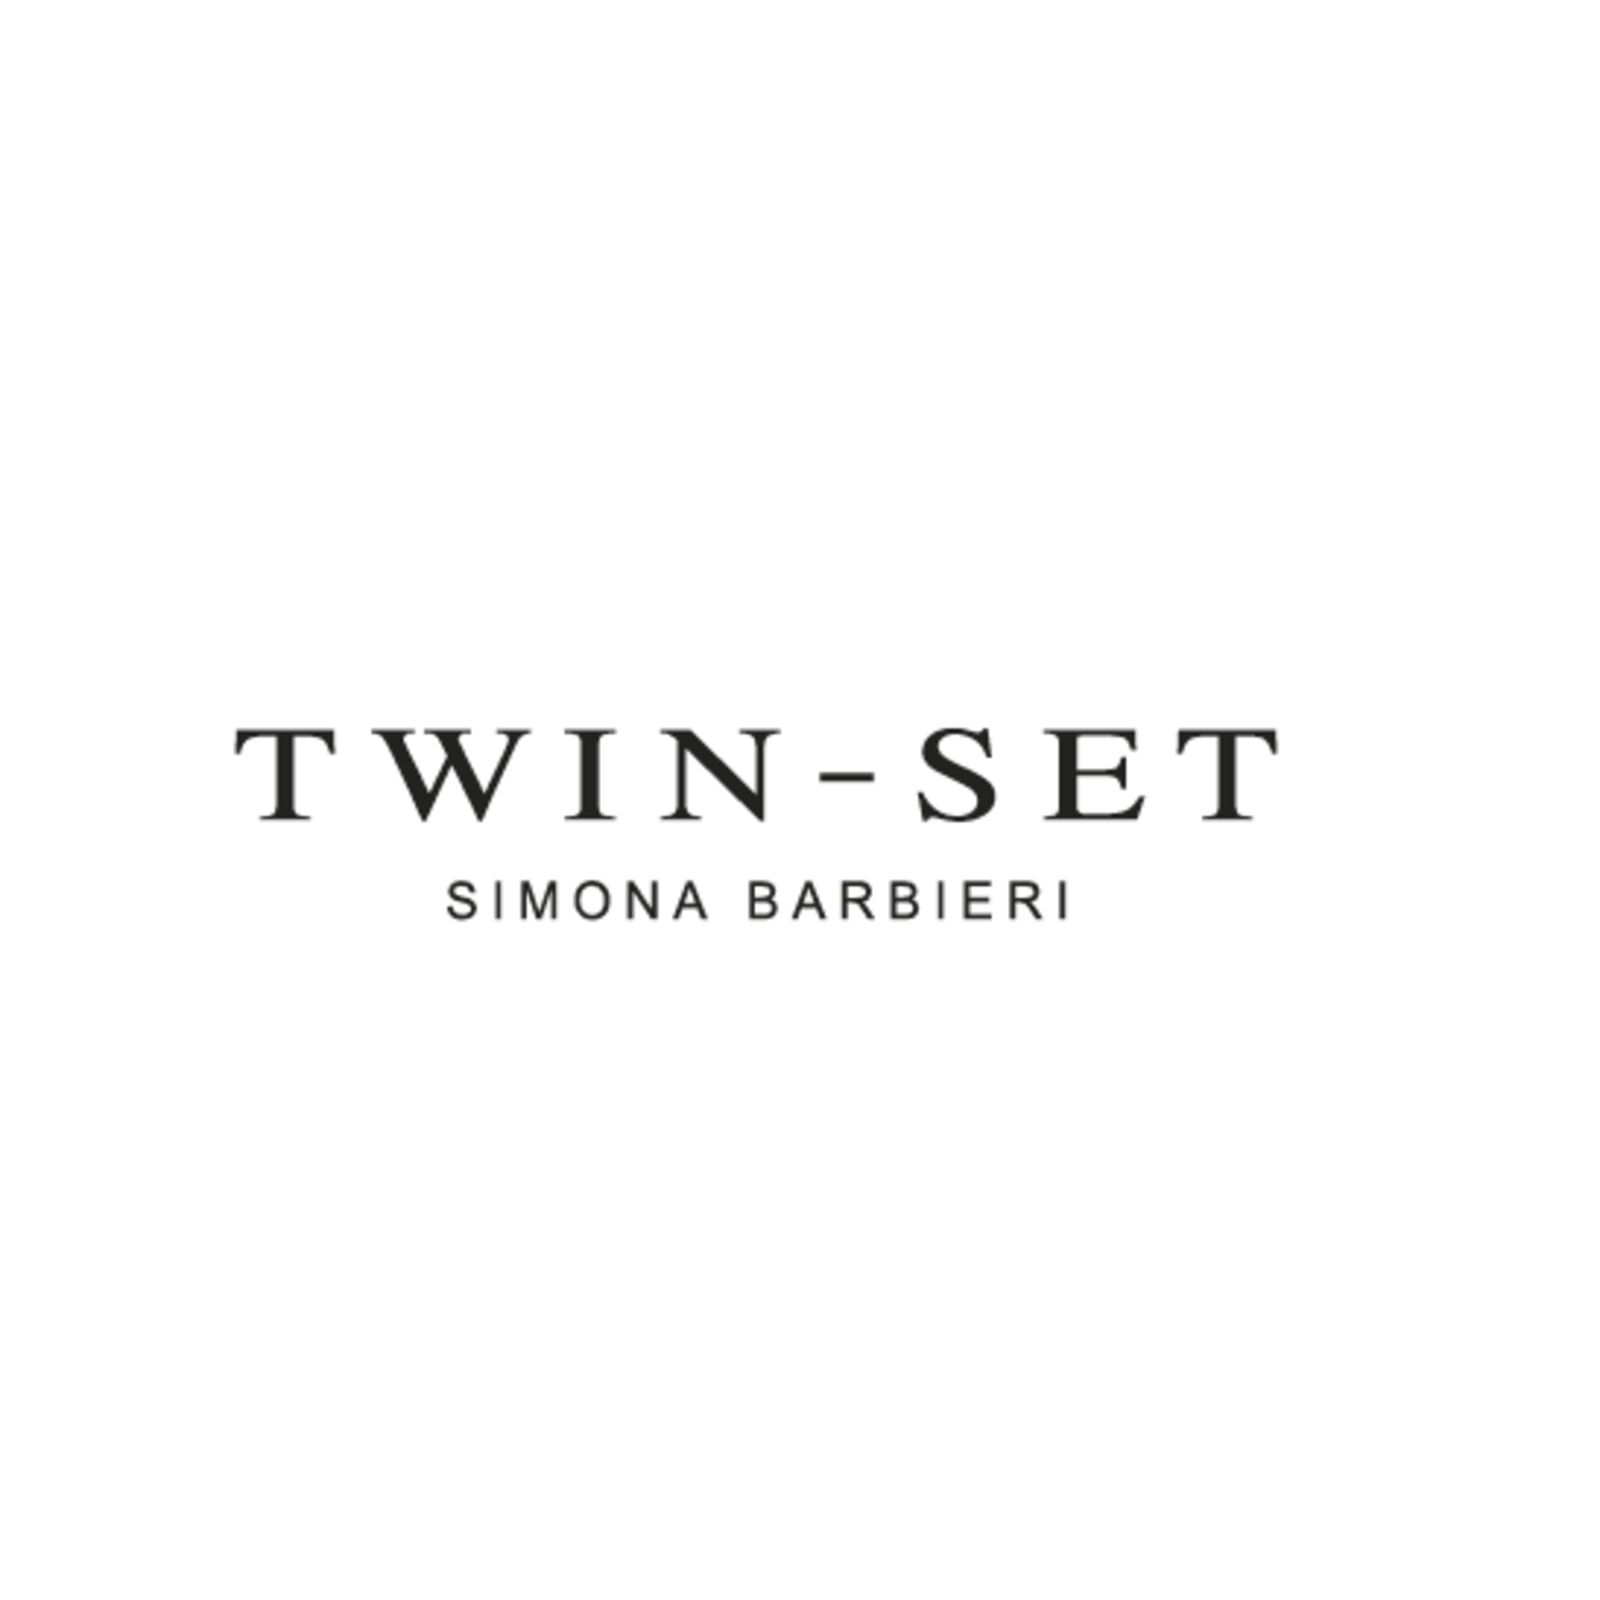 TWIN-SET SIMONA BARBIERI (Image 1)